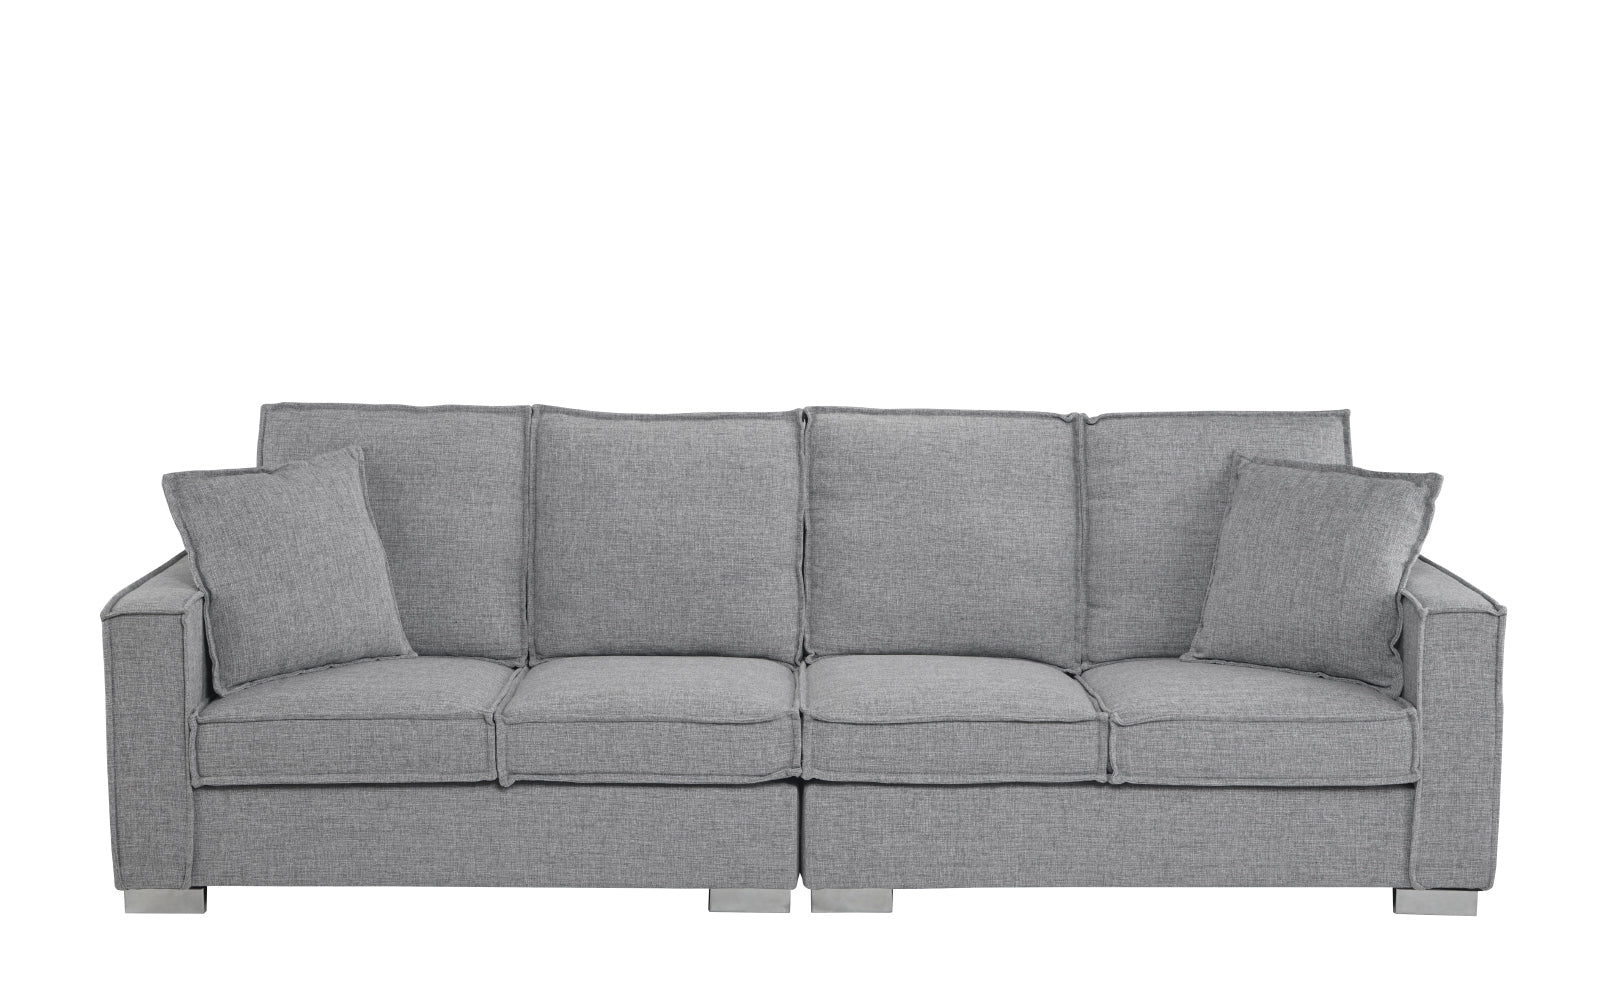 Low Frame Seat Linen Sofa Image